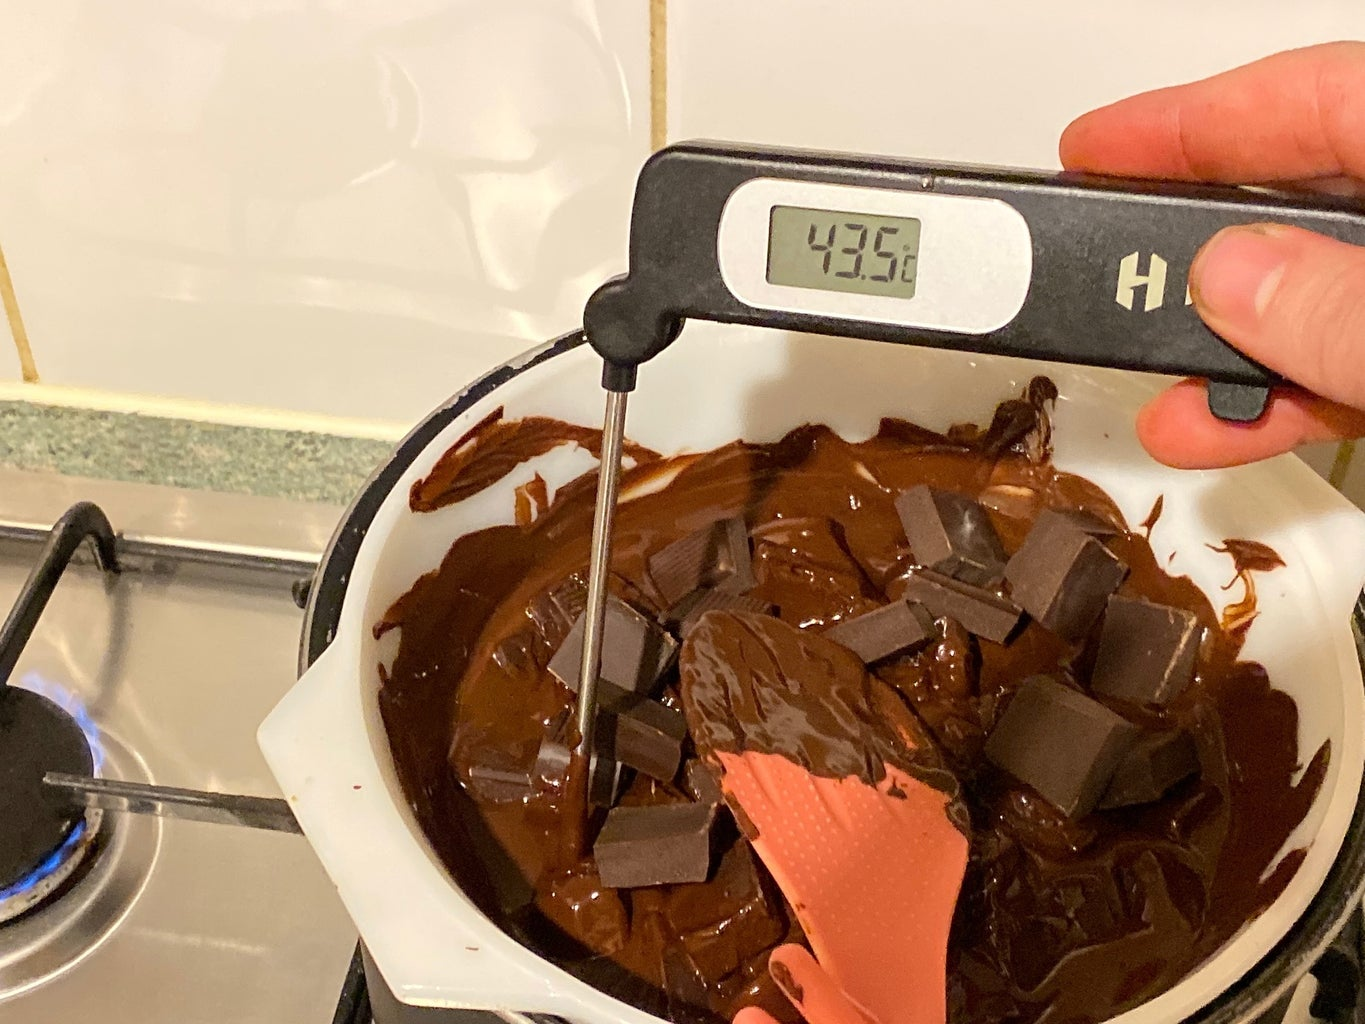 Melting and Tempering the Chocolate